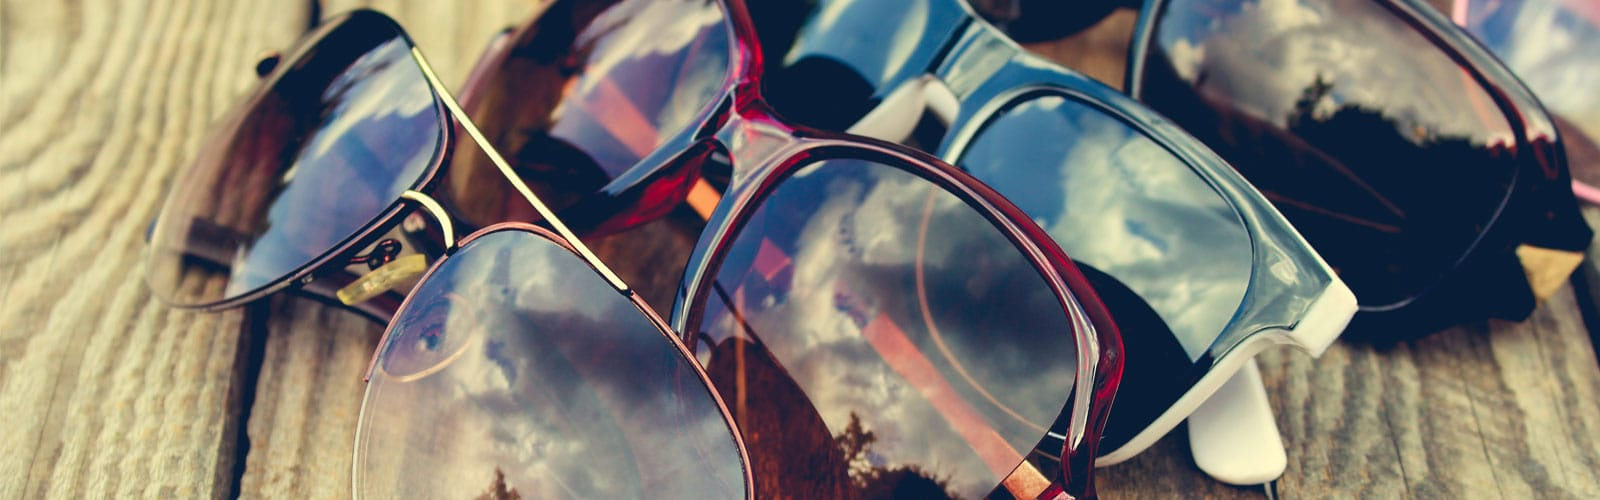 Sunglasses and Types of Lenses